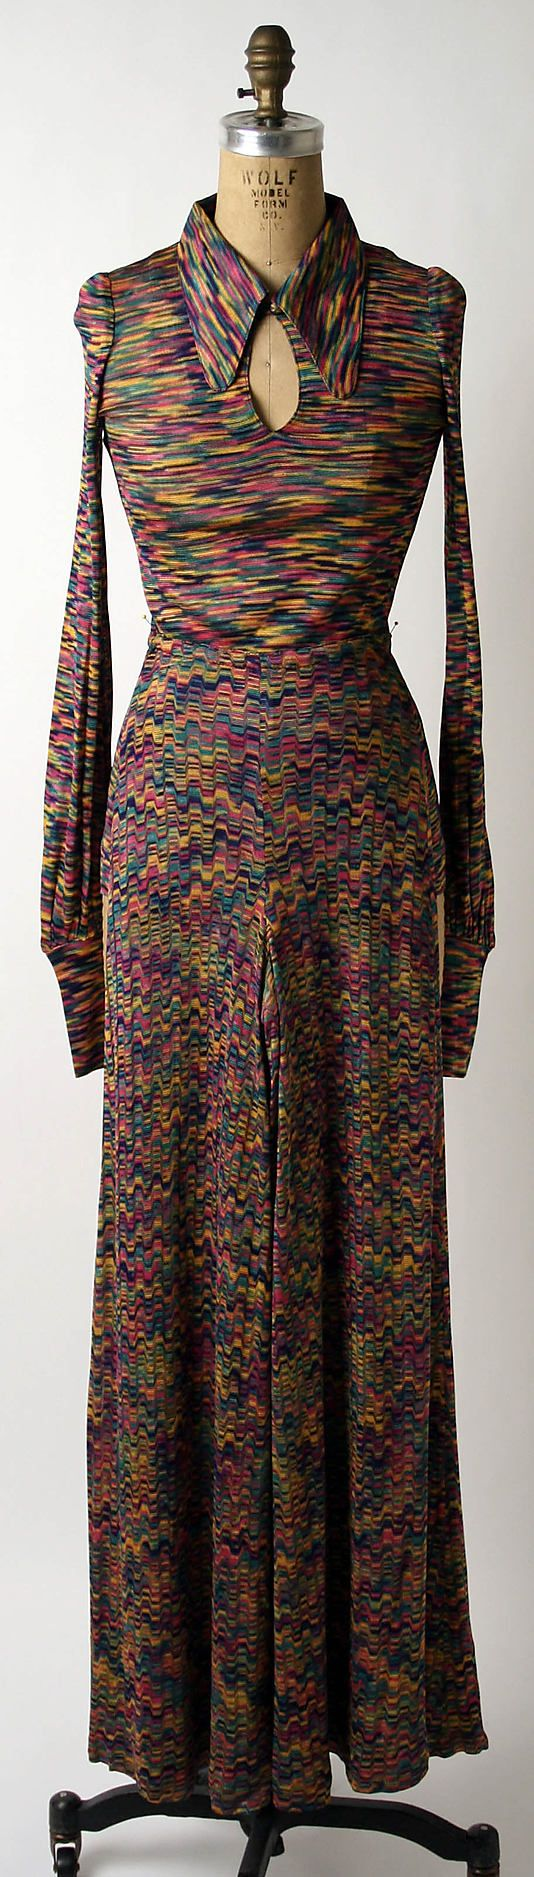 best groovy clothing images on pinterest vintage fashion